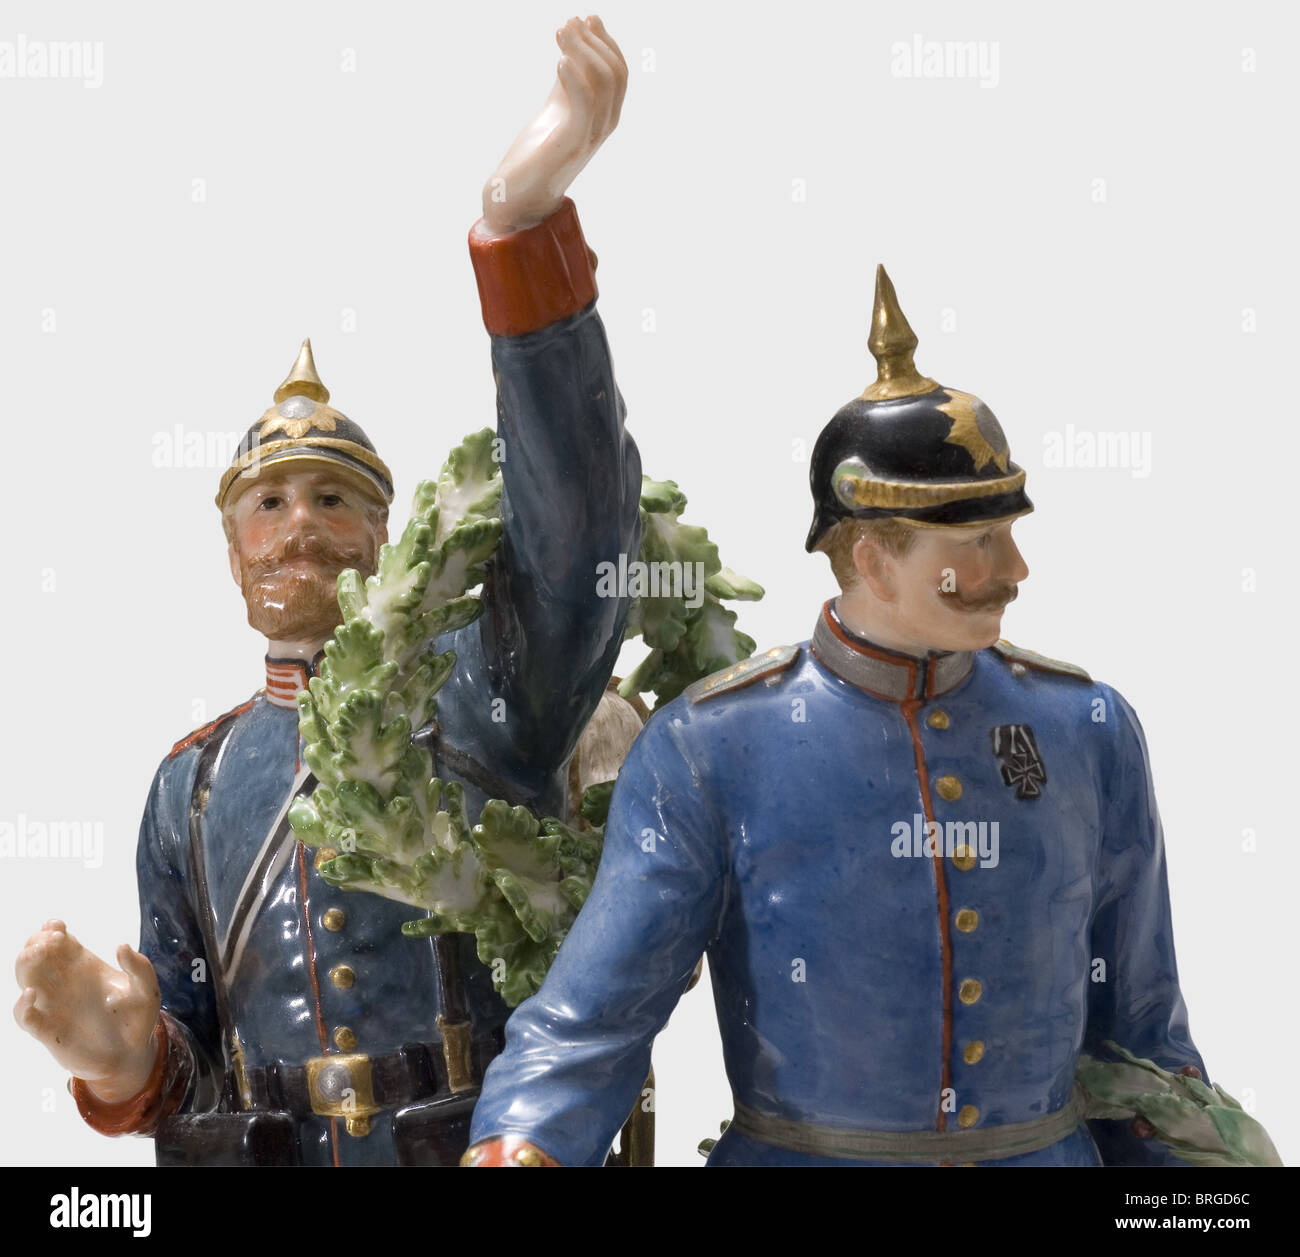 The Glorious Homecoming of the Victors 1871, a group of figurines manufactured by Meissen Porcelain, colour-composed, - Stock Image